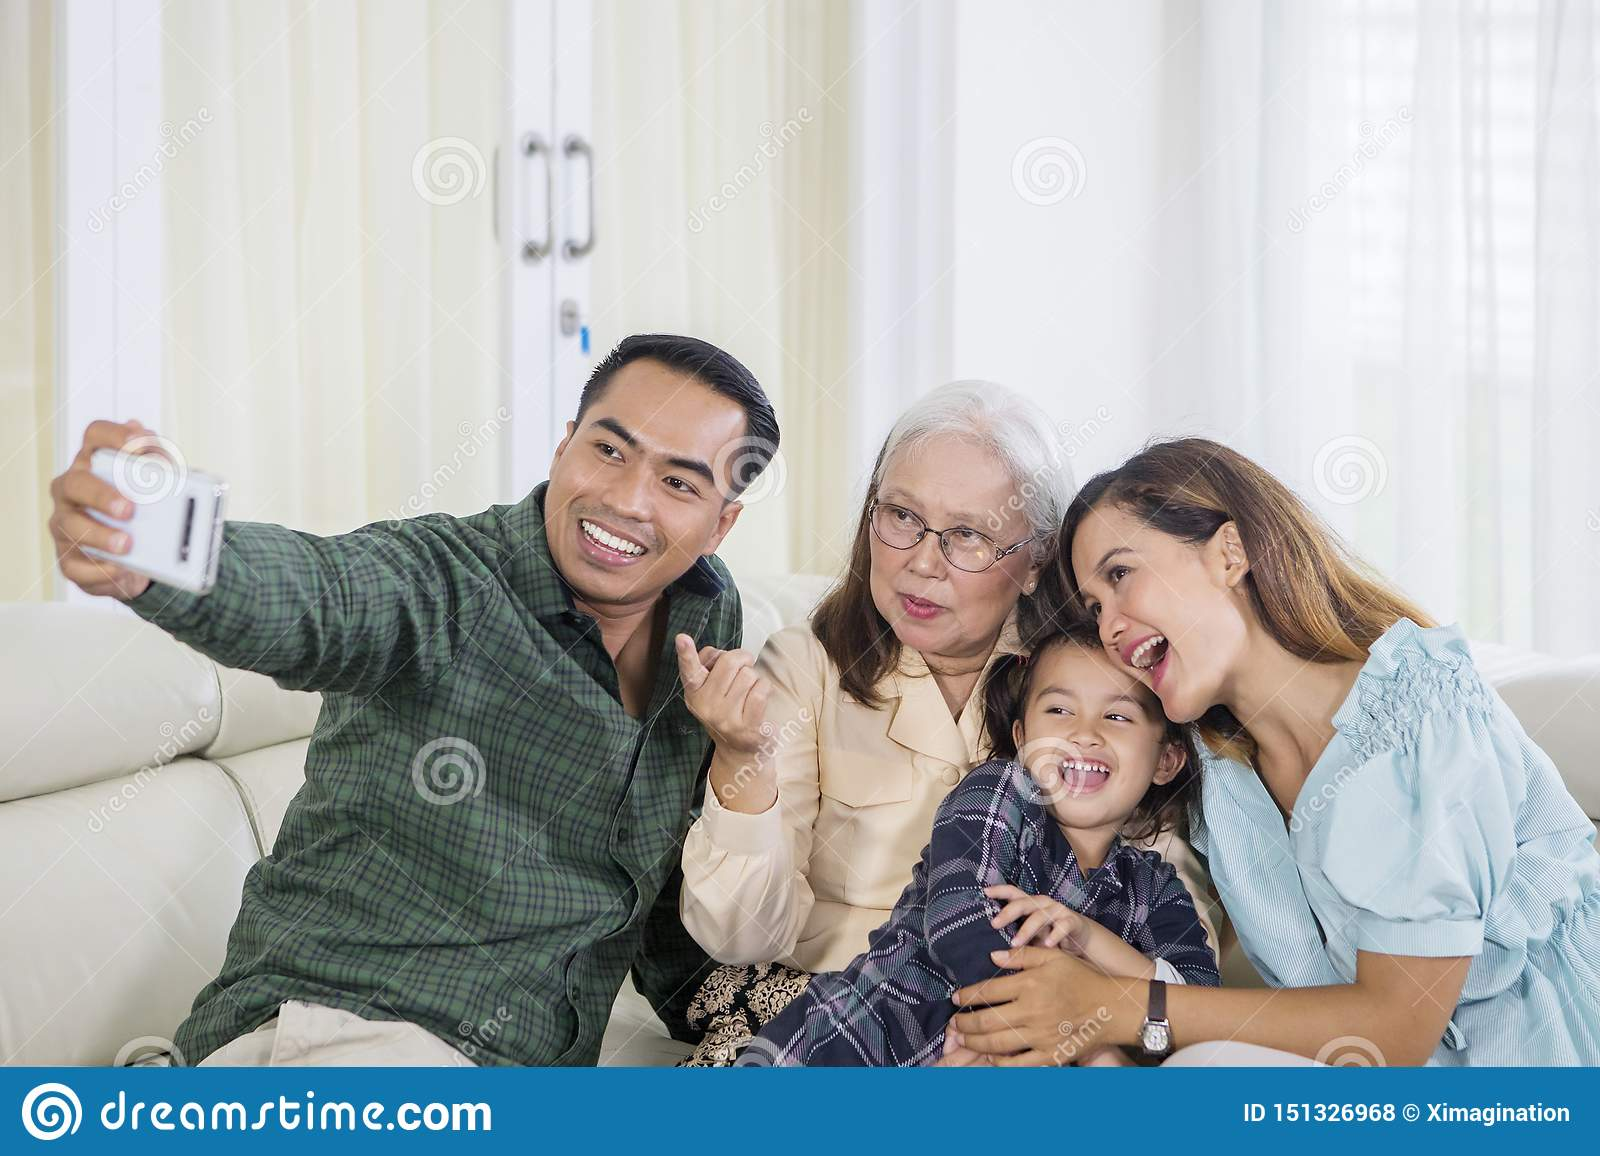 Cheerful three generation family takes selfie at home